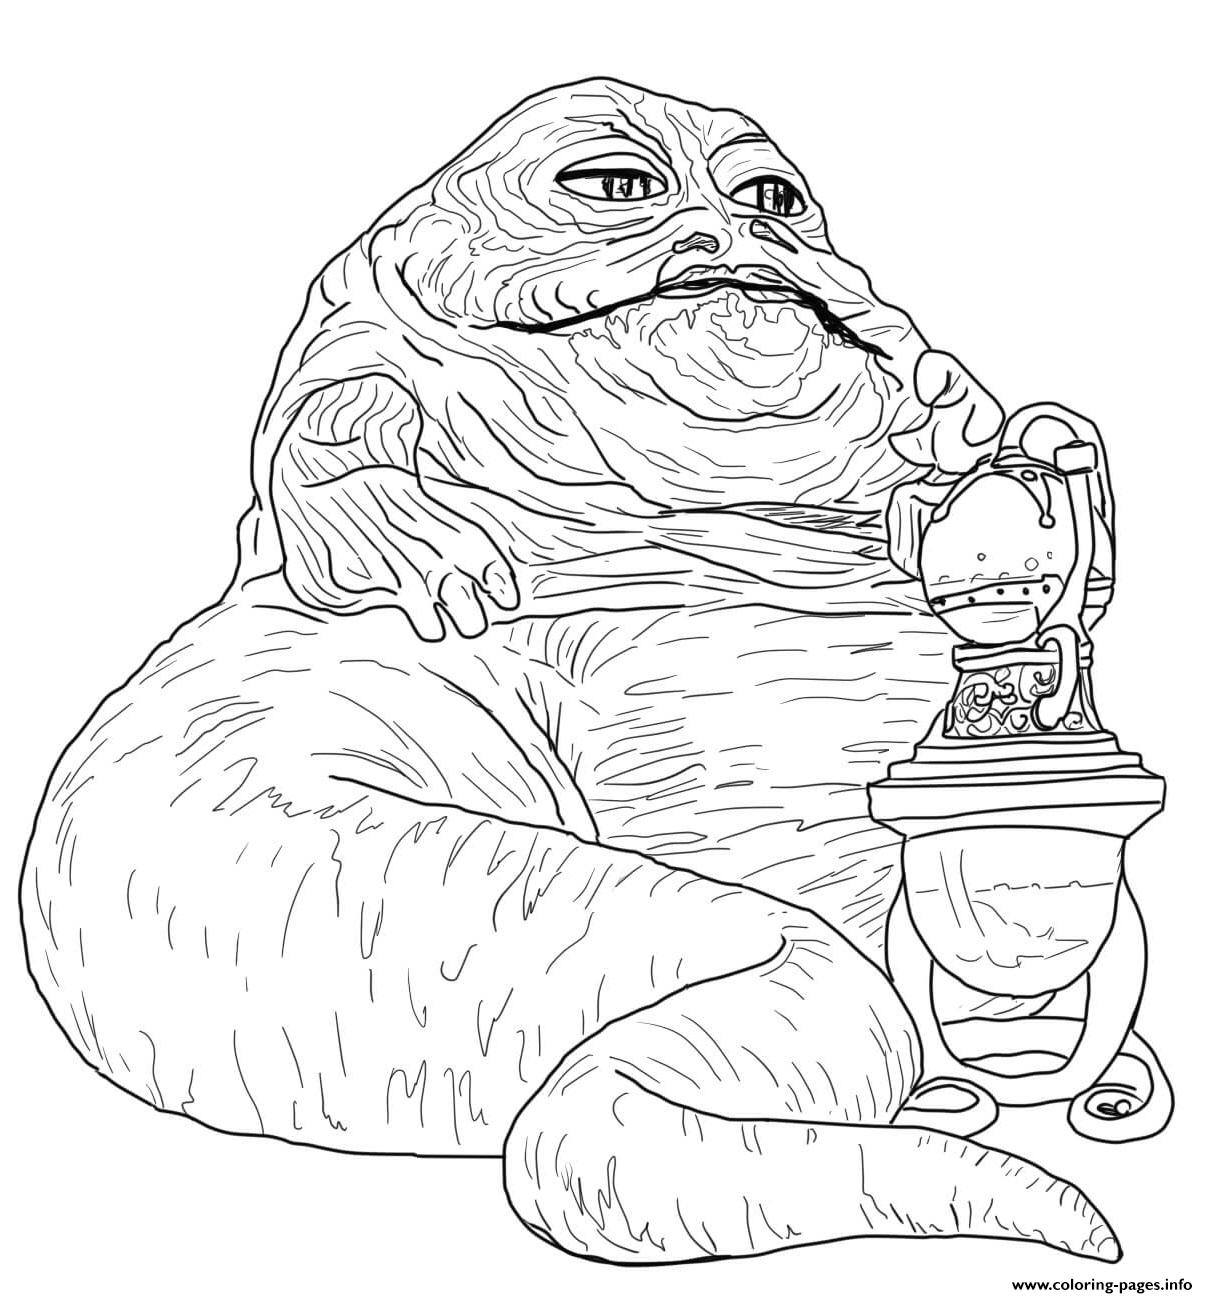 Jabba The Hutt Star Wars Episode VI Return Of The Jedi coloring pages